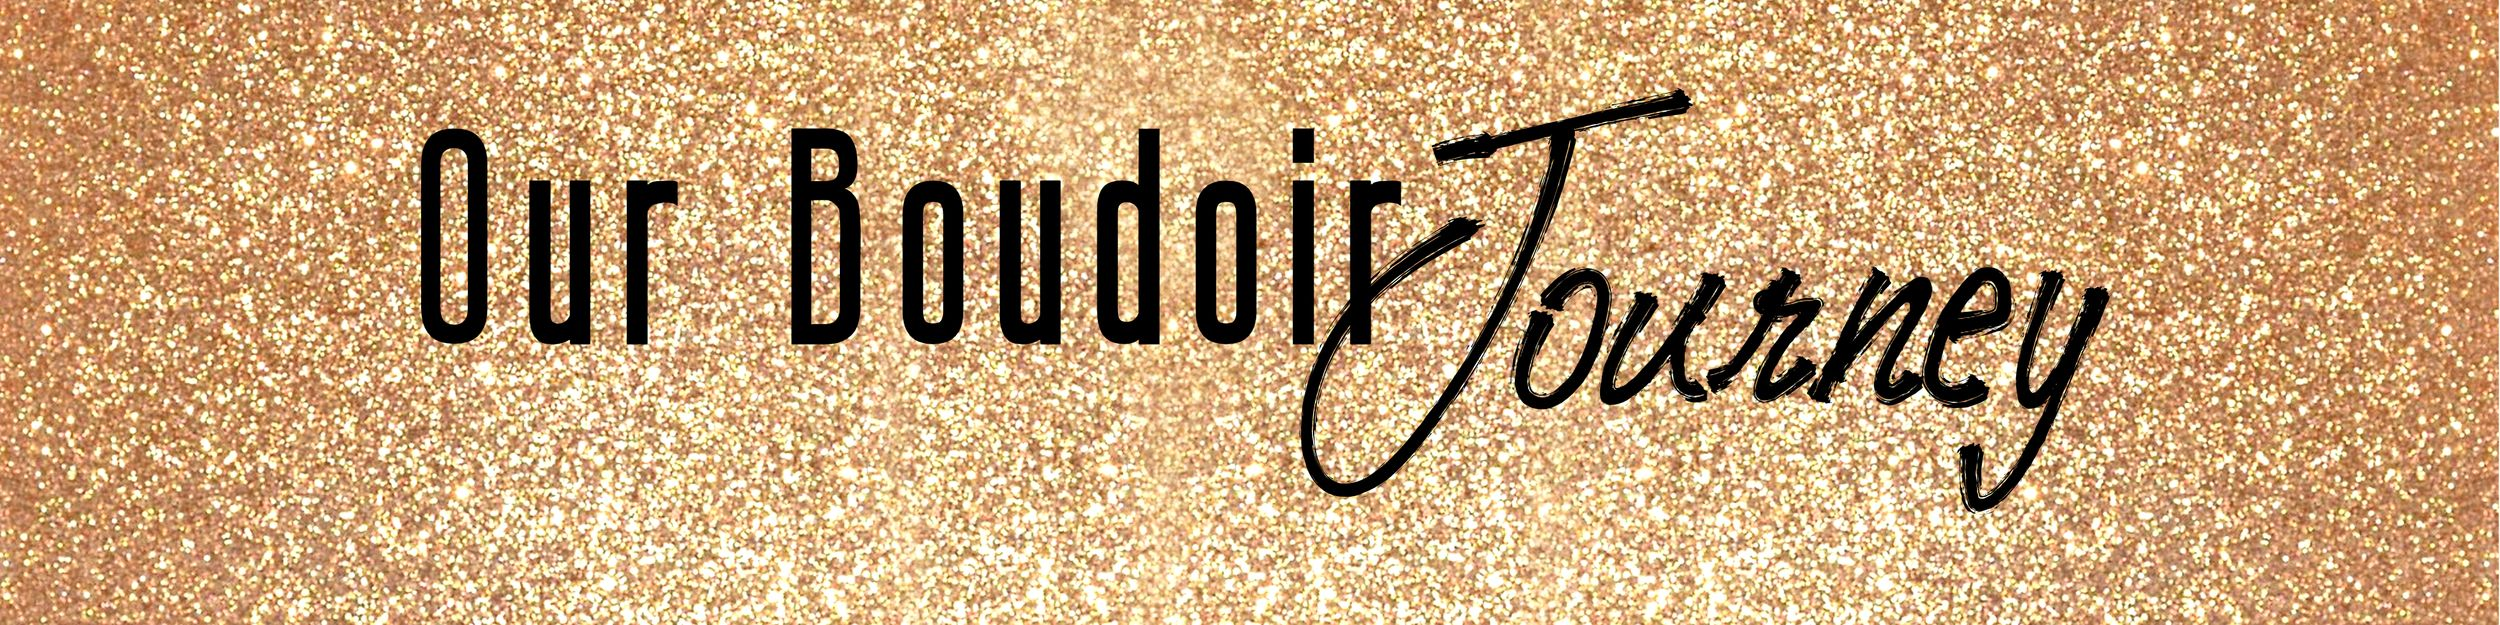 Boudoir By Elise Website Gold Glitter Banner for a Colorado Springs Photographer